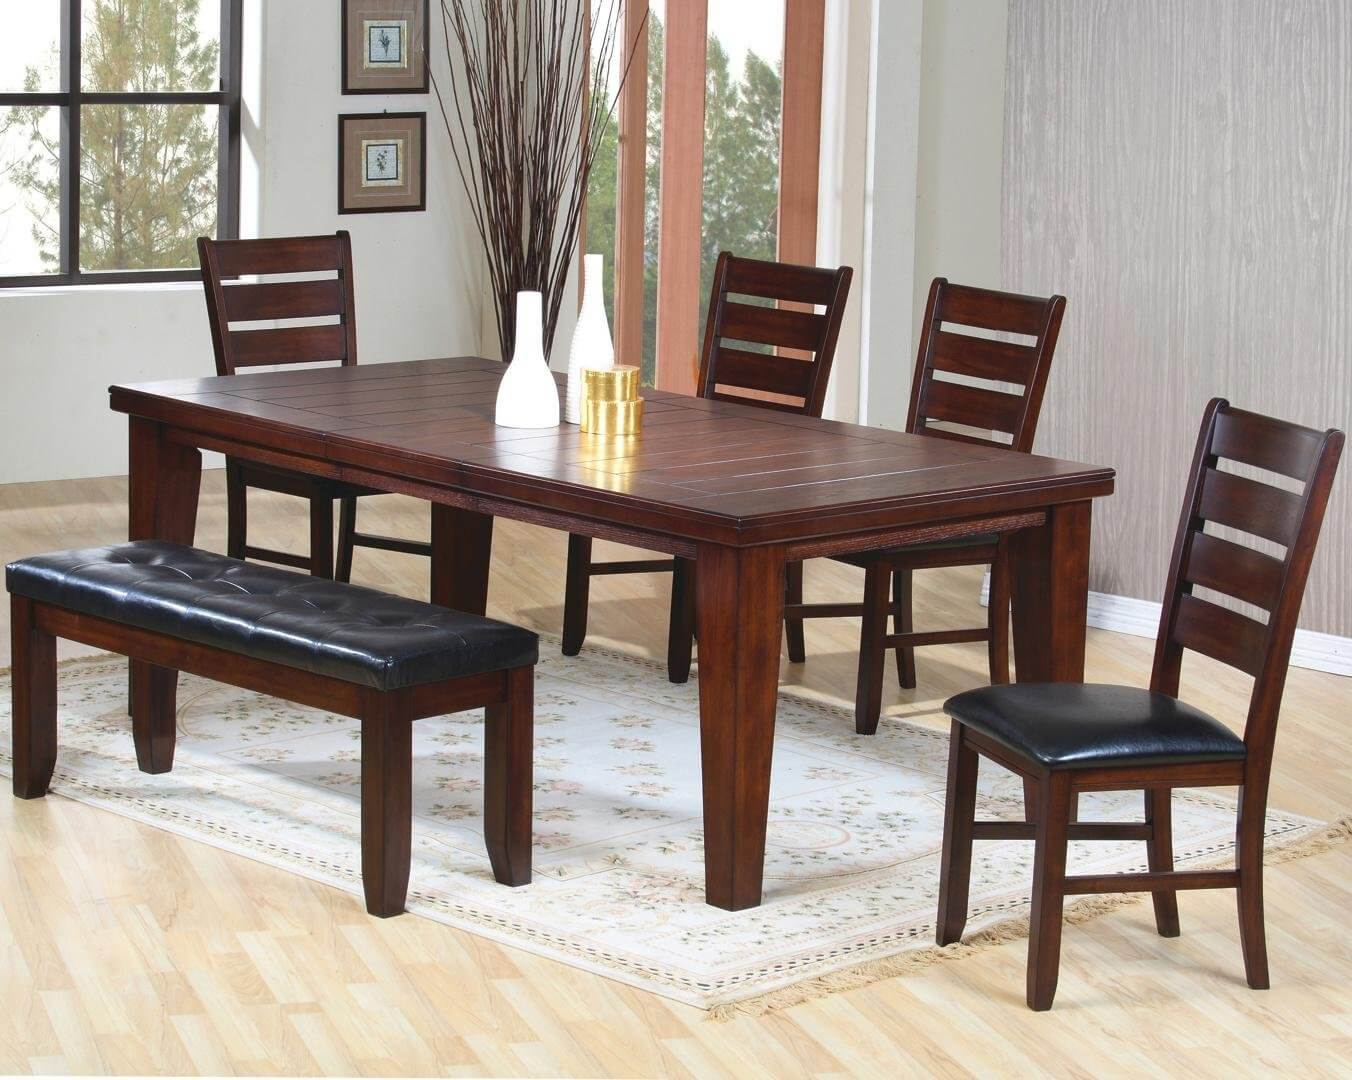 26 Dining Room Sets Big And Small With Bench Seating 2021 Home Stratosphere